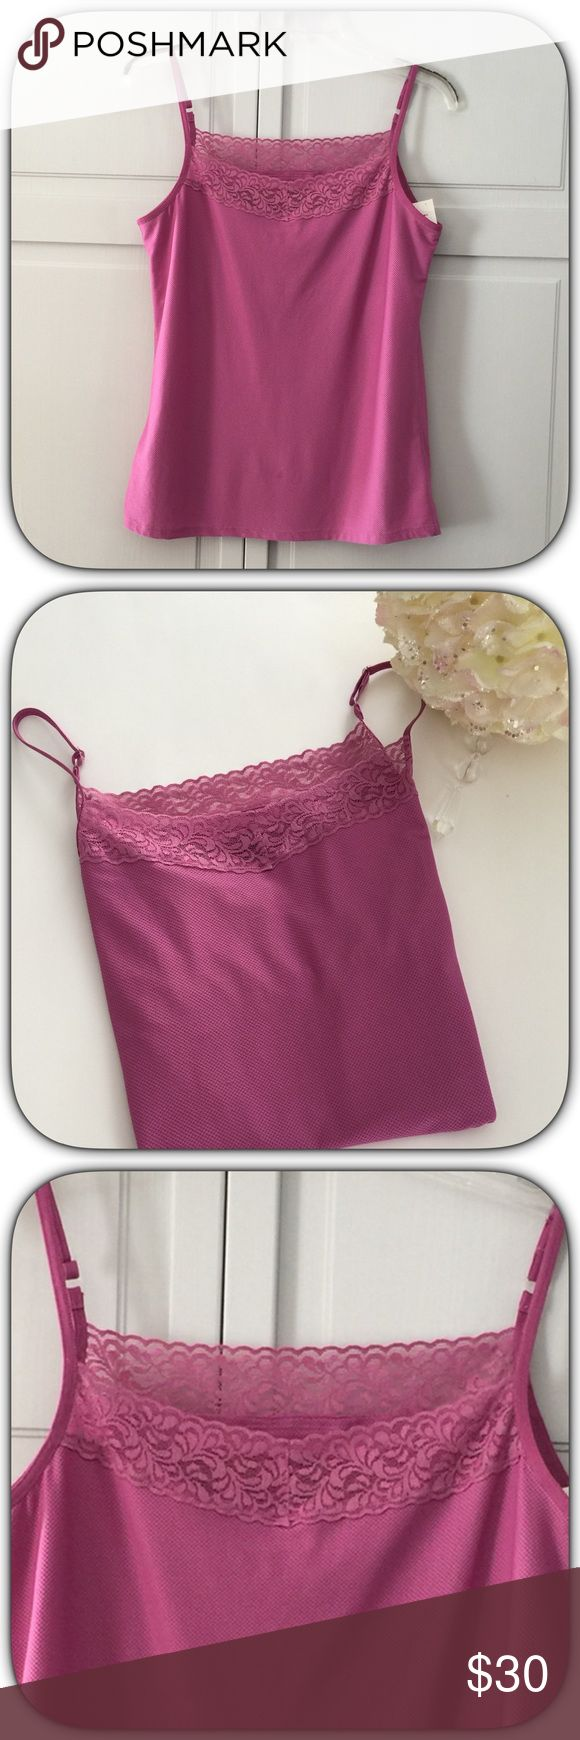 NWT Fabulous Lilac Purple Cami Top This does have a shelf bra inside! Can be layered, worn alone or even as a workout top! The color is gorgeous too! Bust 18 Length 24 Boutique Tops Camisoles